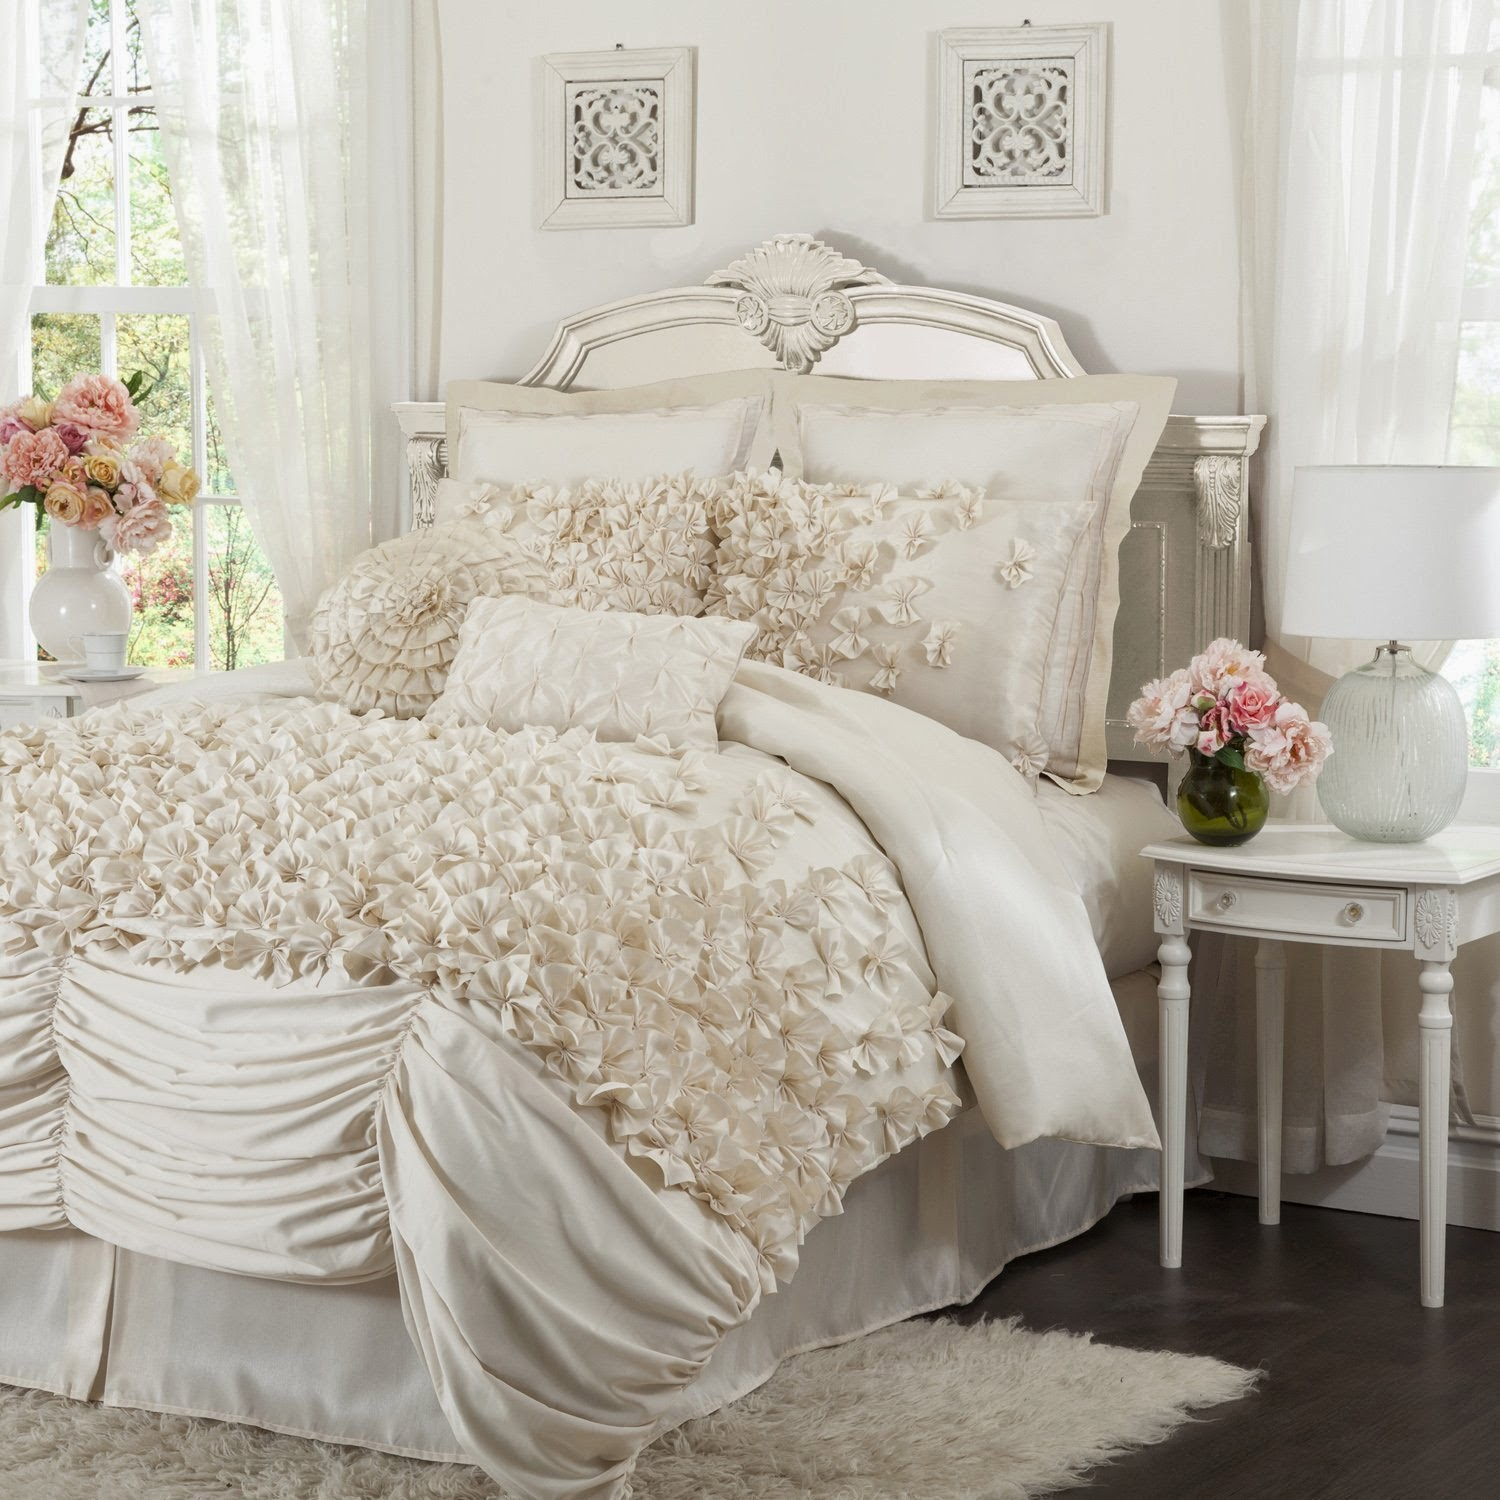 Buy Best And Beautiful Bedding Sets On Sale: Victorian ...